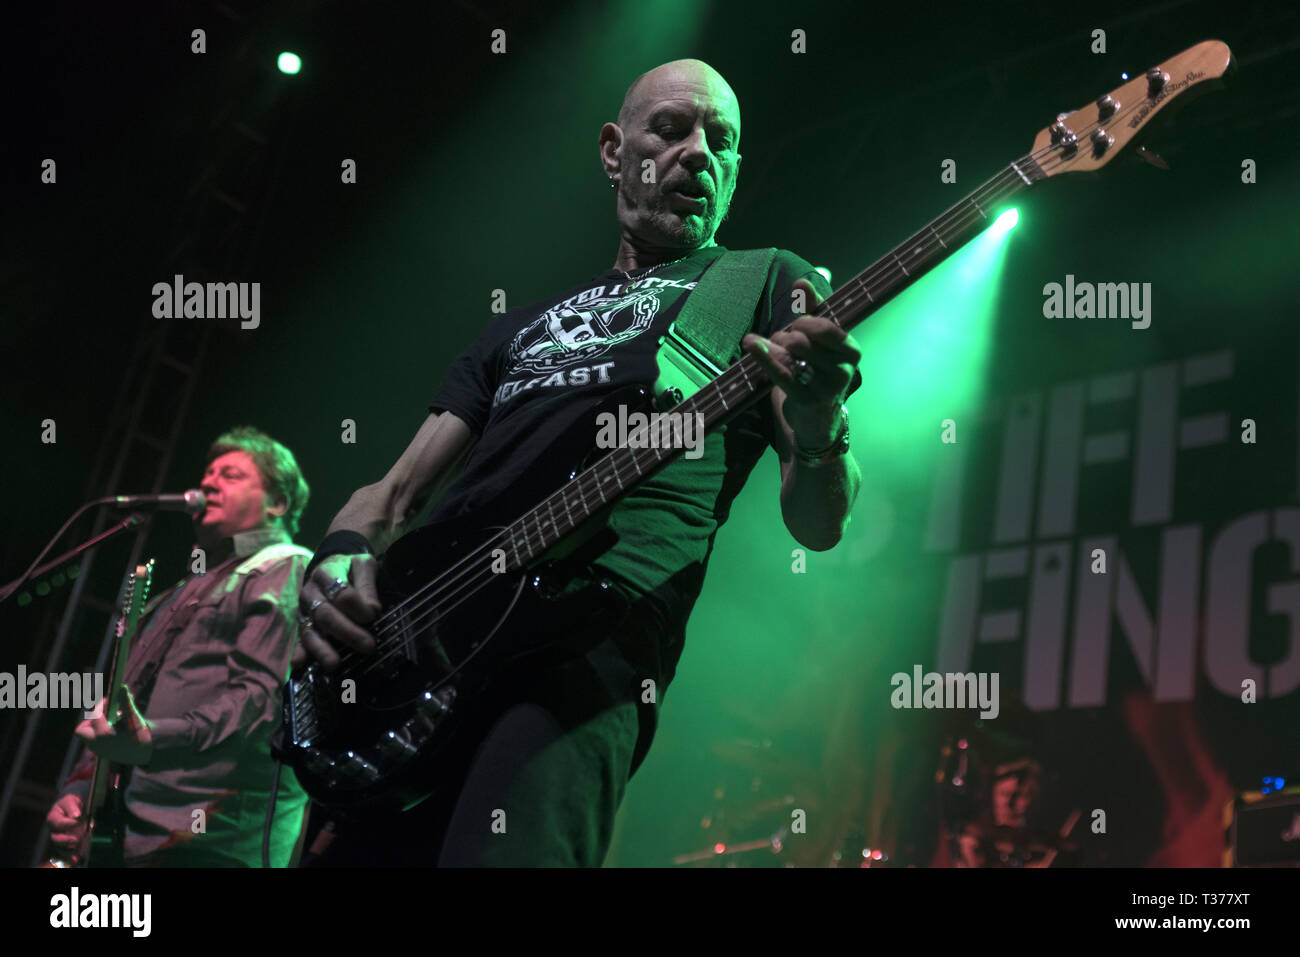 Belfast punk rock band Stiff Little Fingers performing at the O2 Academy in Leeds on the opening night of The Ignition Tour 2019  Featuring: Ali McMordie, Jake Burns, Stiff Little Fingers Where: Leeds, United Kingdom When: 06 Mar 2019 Credit: Graham Finney/WENN Stock Photo